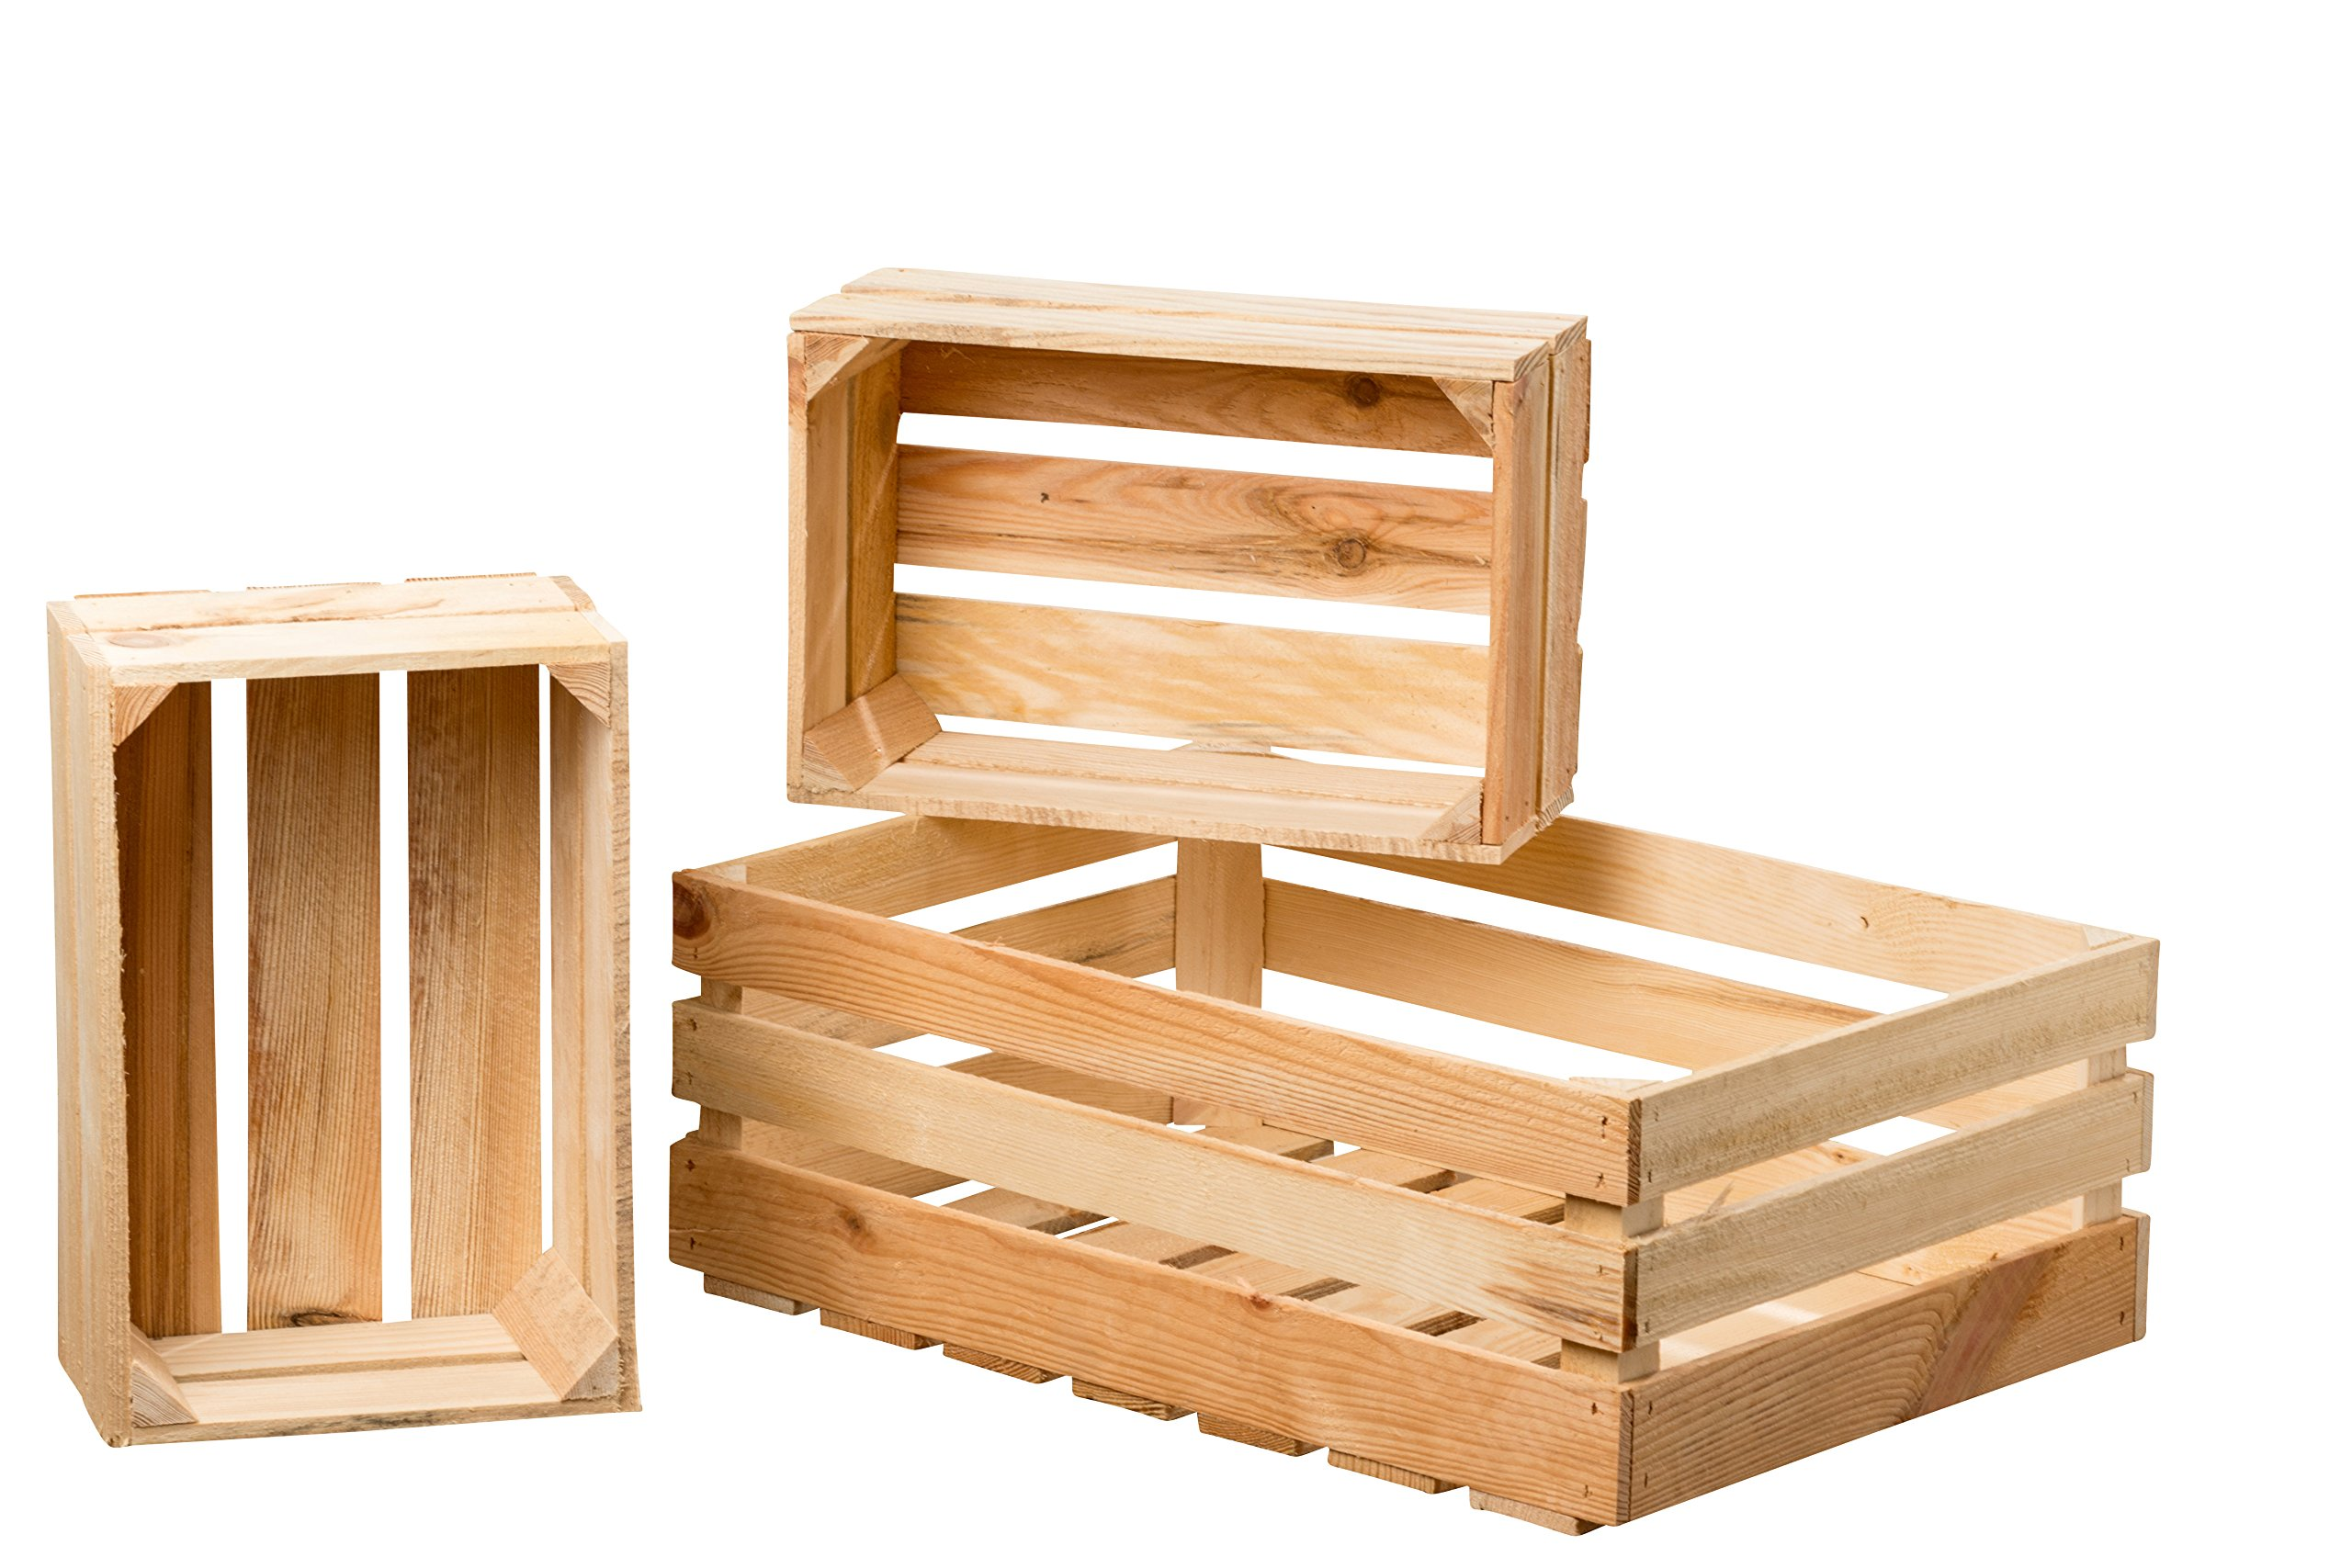 The Farmer's Market Wooden Fruit Crates, Set of 3, Sustainable Fir Wood, Nesting Rectangles, for Display, Storage, and More. 1-23 1/2 x 15 3/4 x 8 3/4 Inches, 2-14 1/2 x 9 3/4 x 6 Inches by WHW